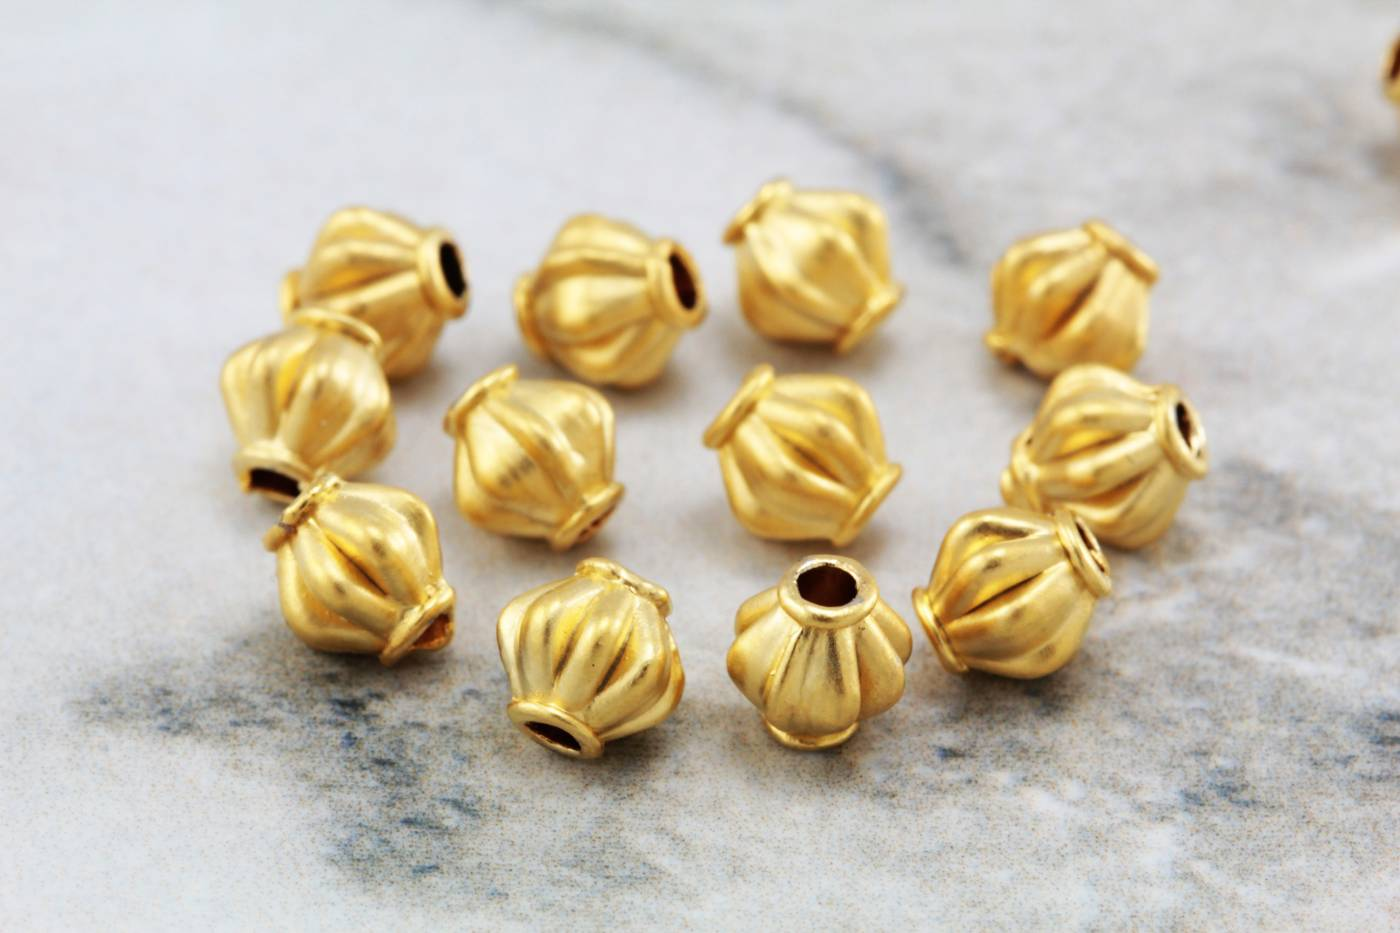 gold-plated-6mm-round-shape-spacer-beads.jpg